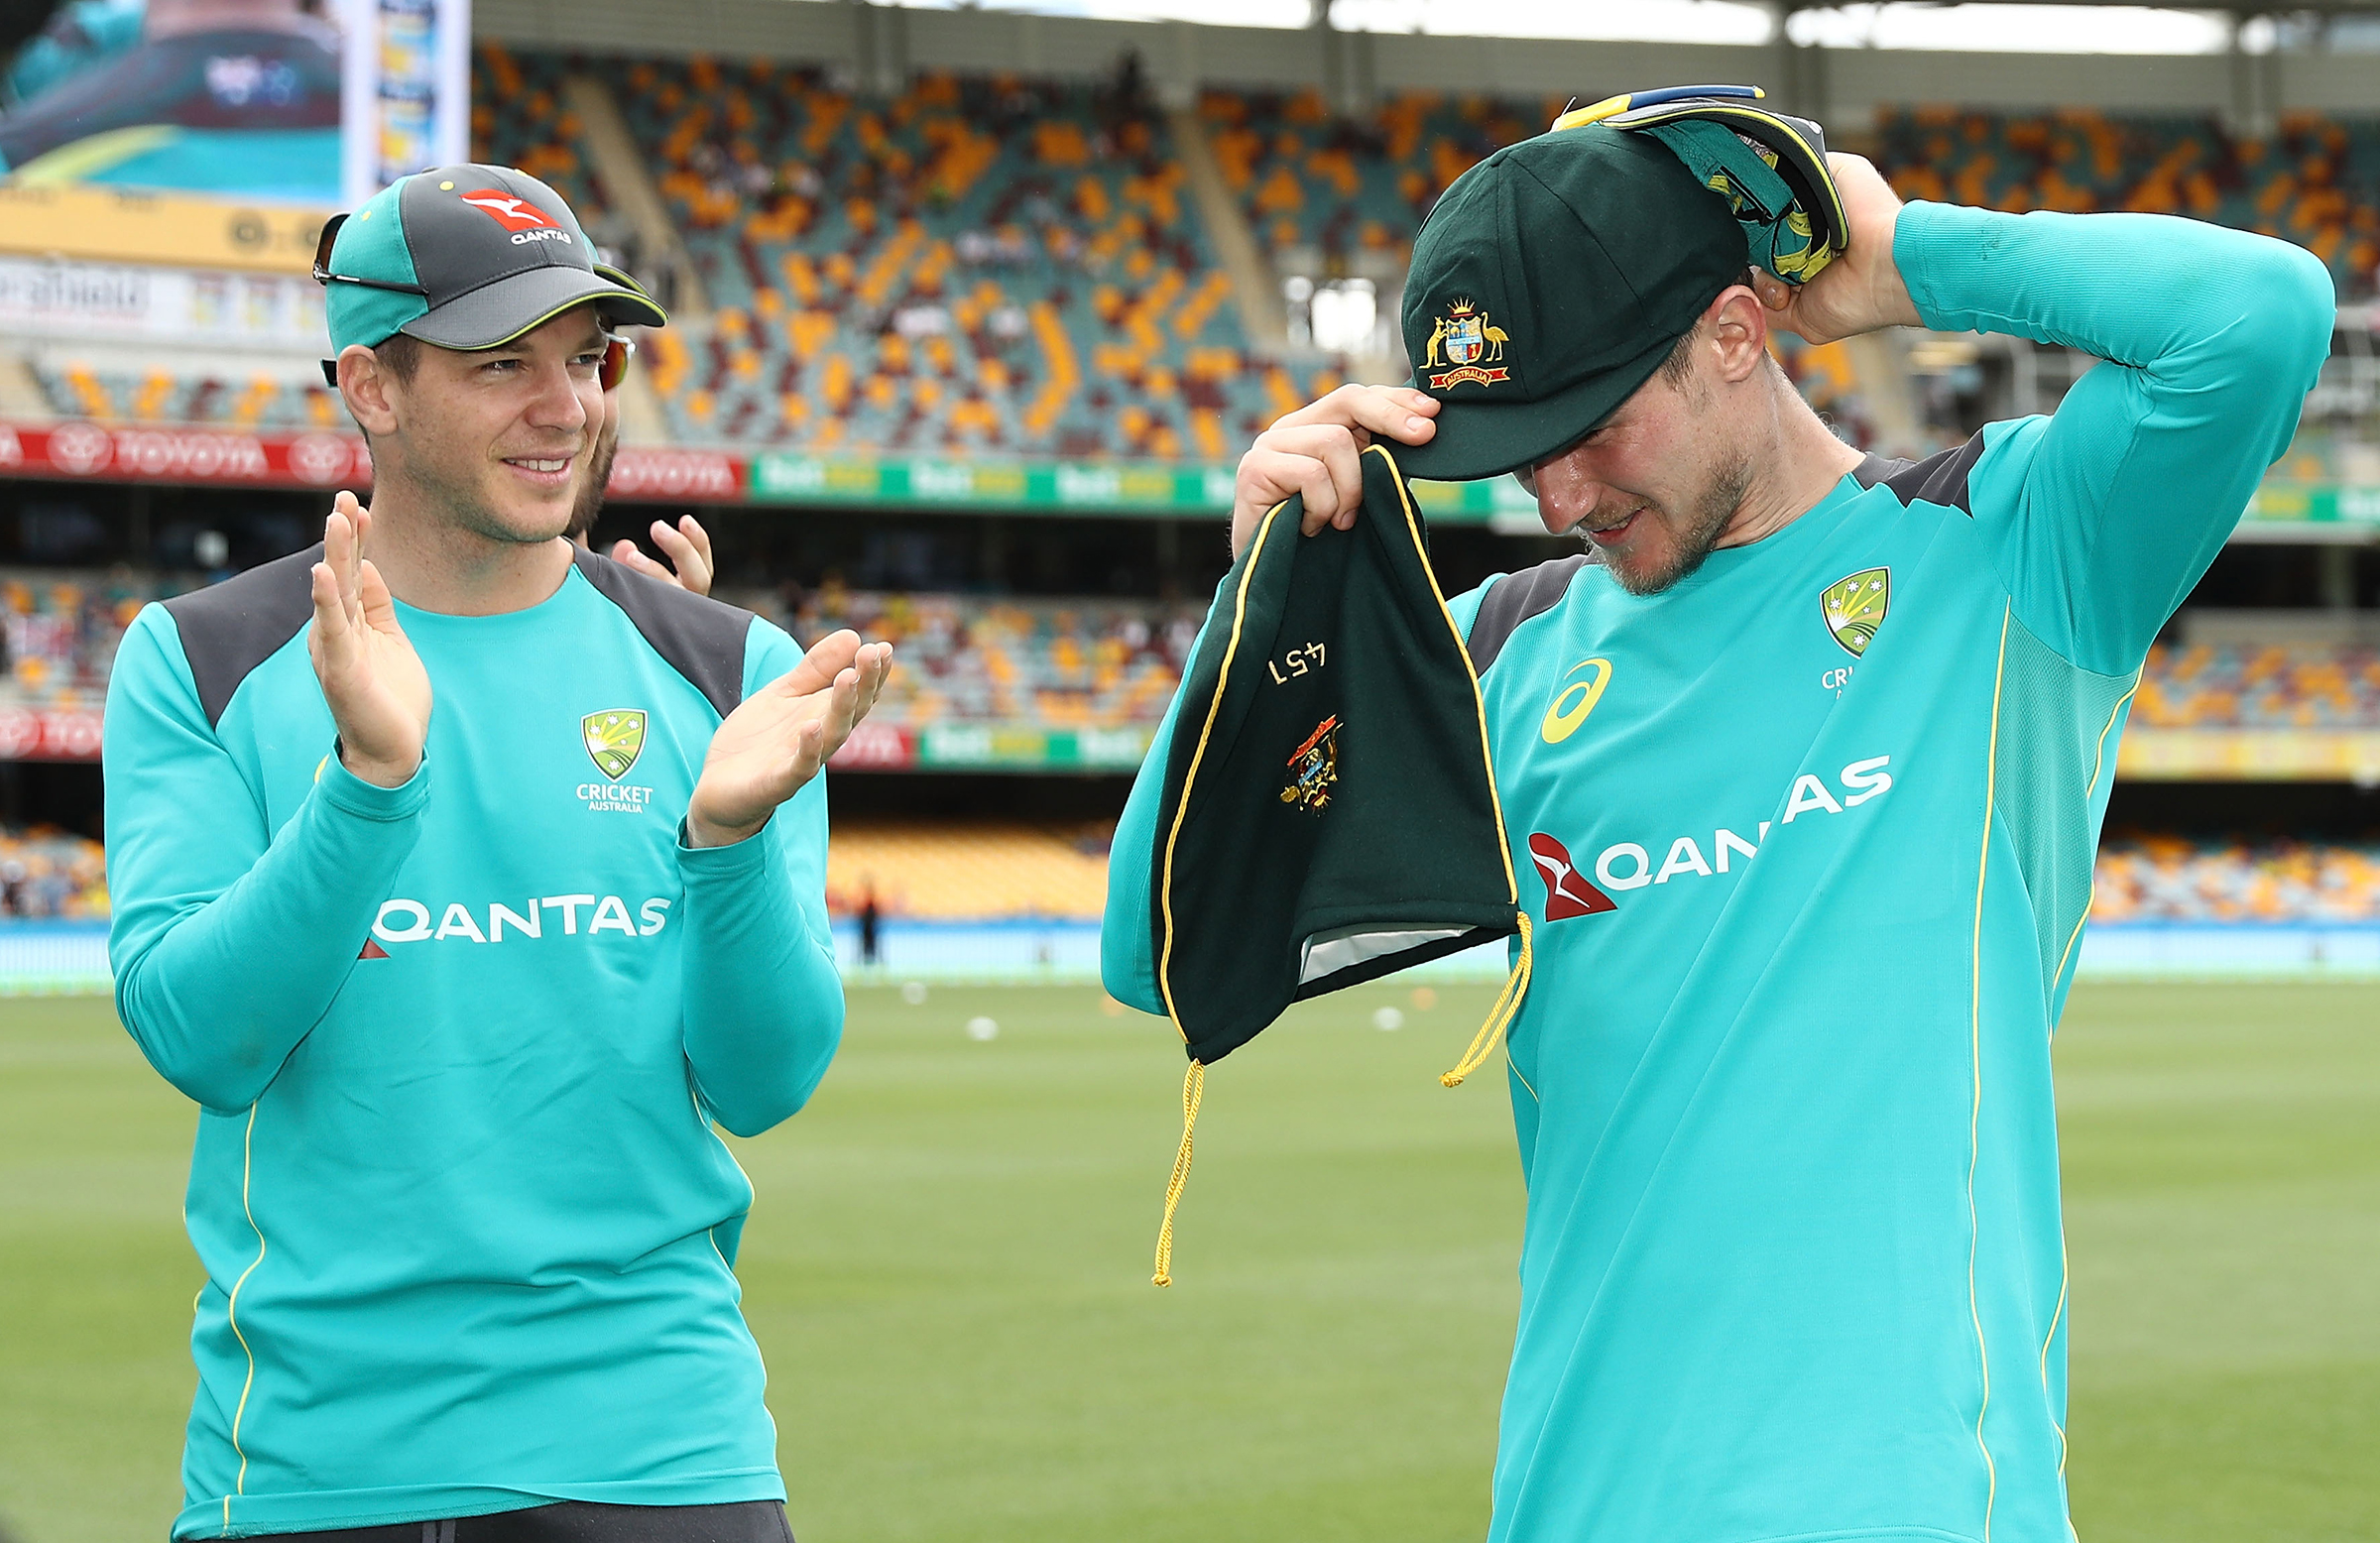 Bancroft (r) receives his Baggy Green as Paine (l) watches on // Getty